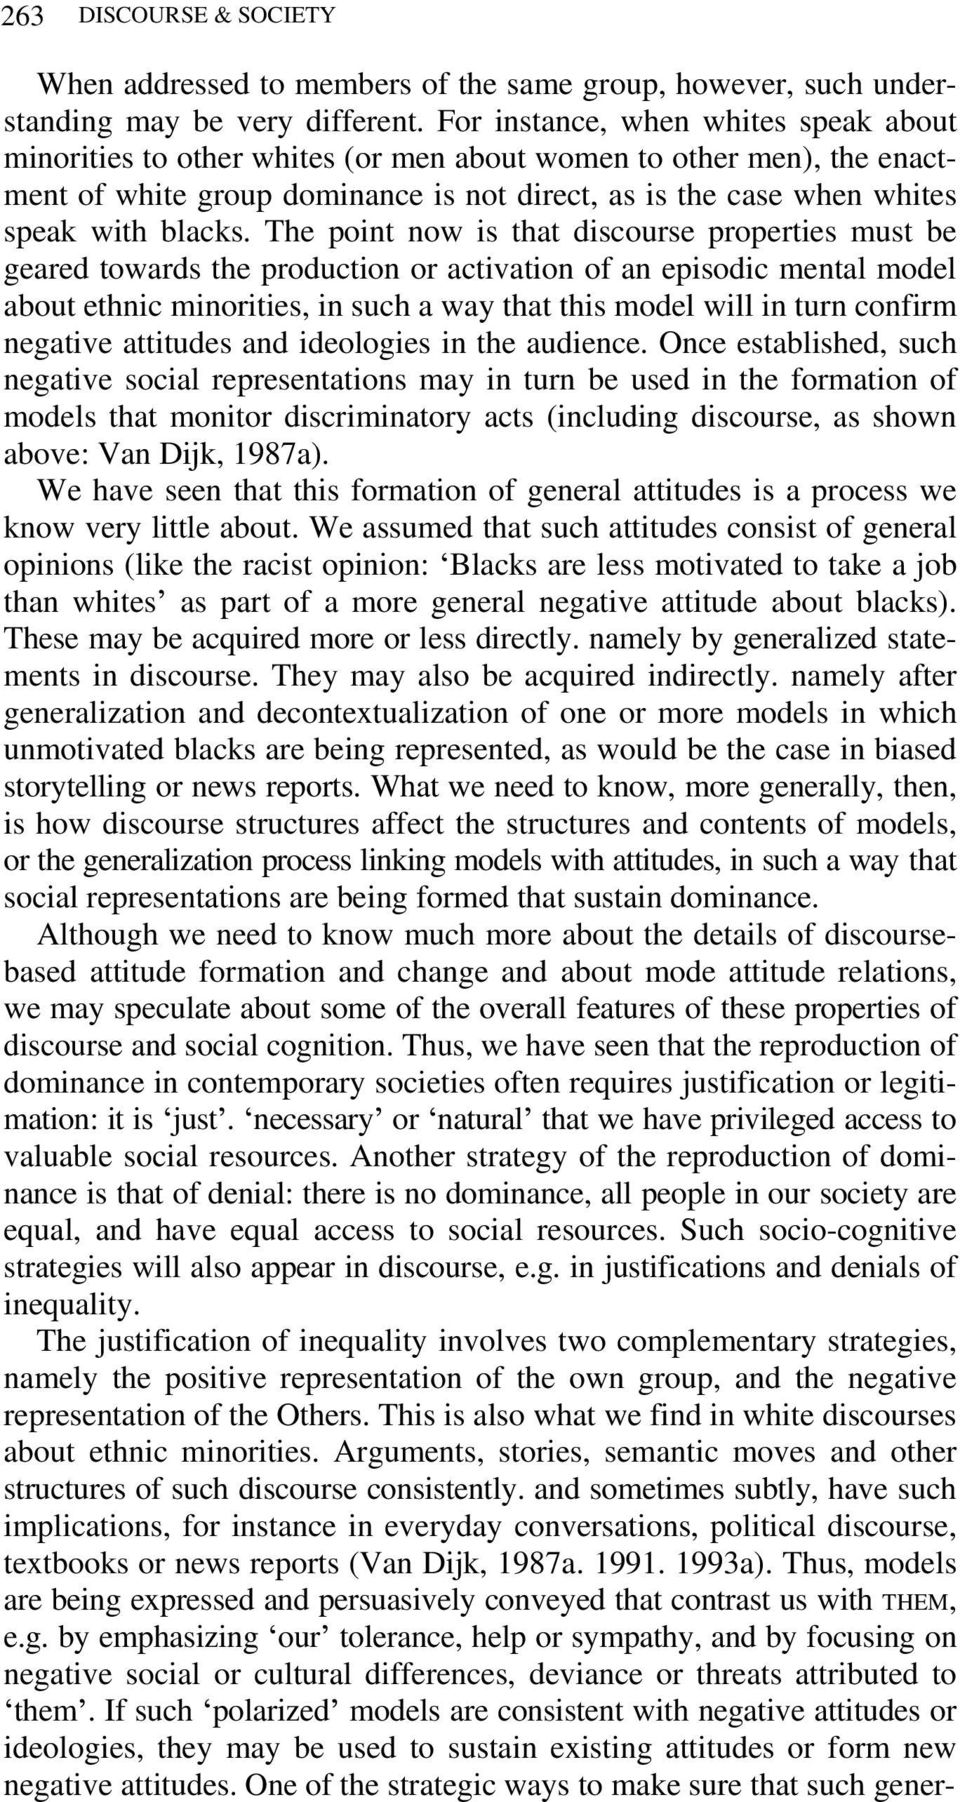 The point now is that discourse properties must be geared towards the production or activation of an episodic mental model about ethnic minorities, in such a way that this model will in turn confirm